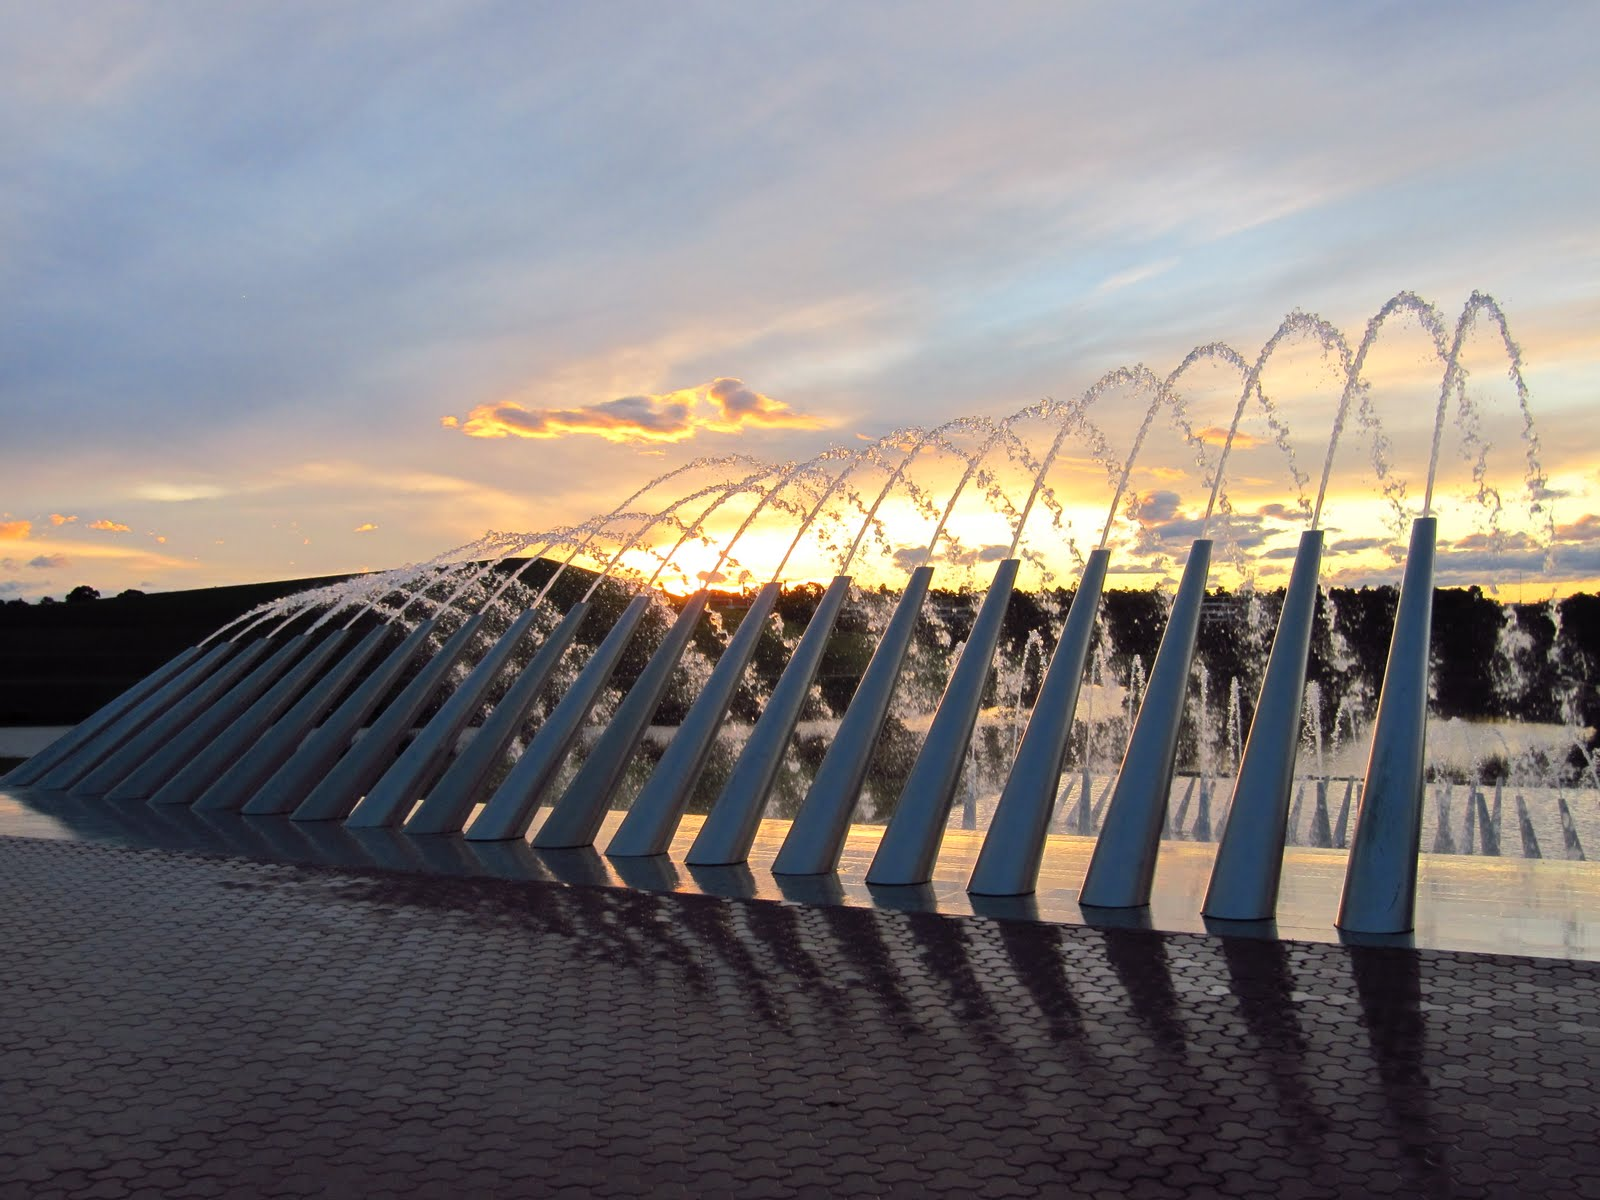 A Sunset View Of The Northern Water Feature Located At Sydney Olympic Park In Western Suburb Homebush Bay